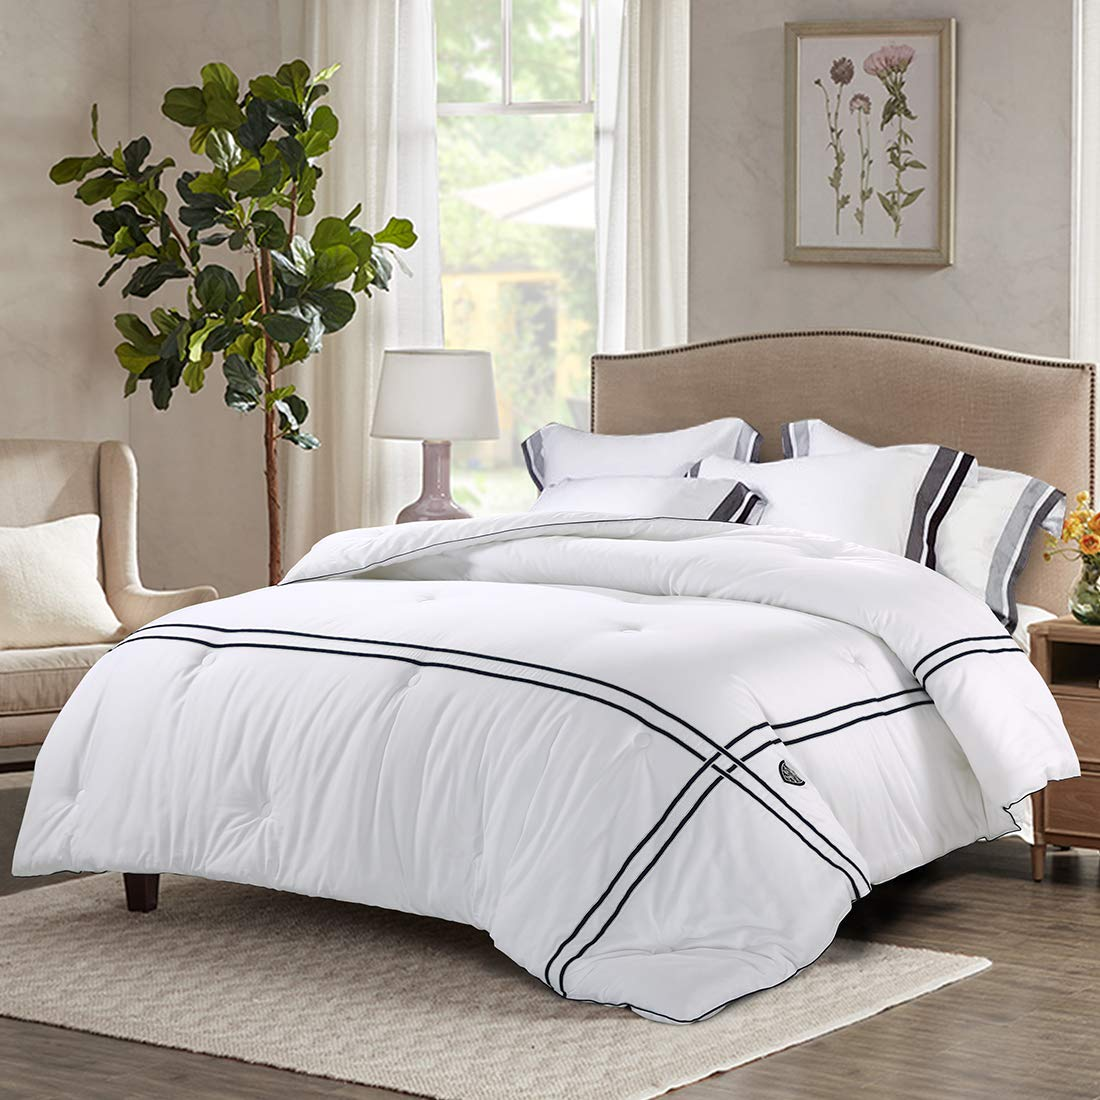 INGALIK All-Season Cotton 100% Bed Comforter Striped Cooling Down Alternative Quilted Duvet Insert - Reversible - Hypoallergenic - Machine Washable (Glory White, Twin/Twin XL 64 x 88 inches)